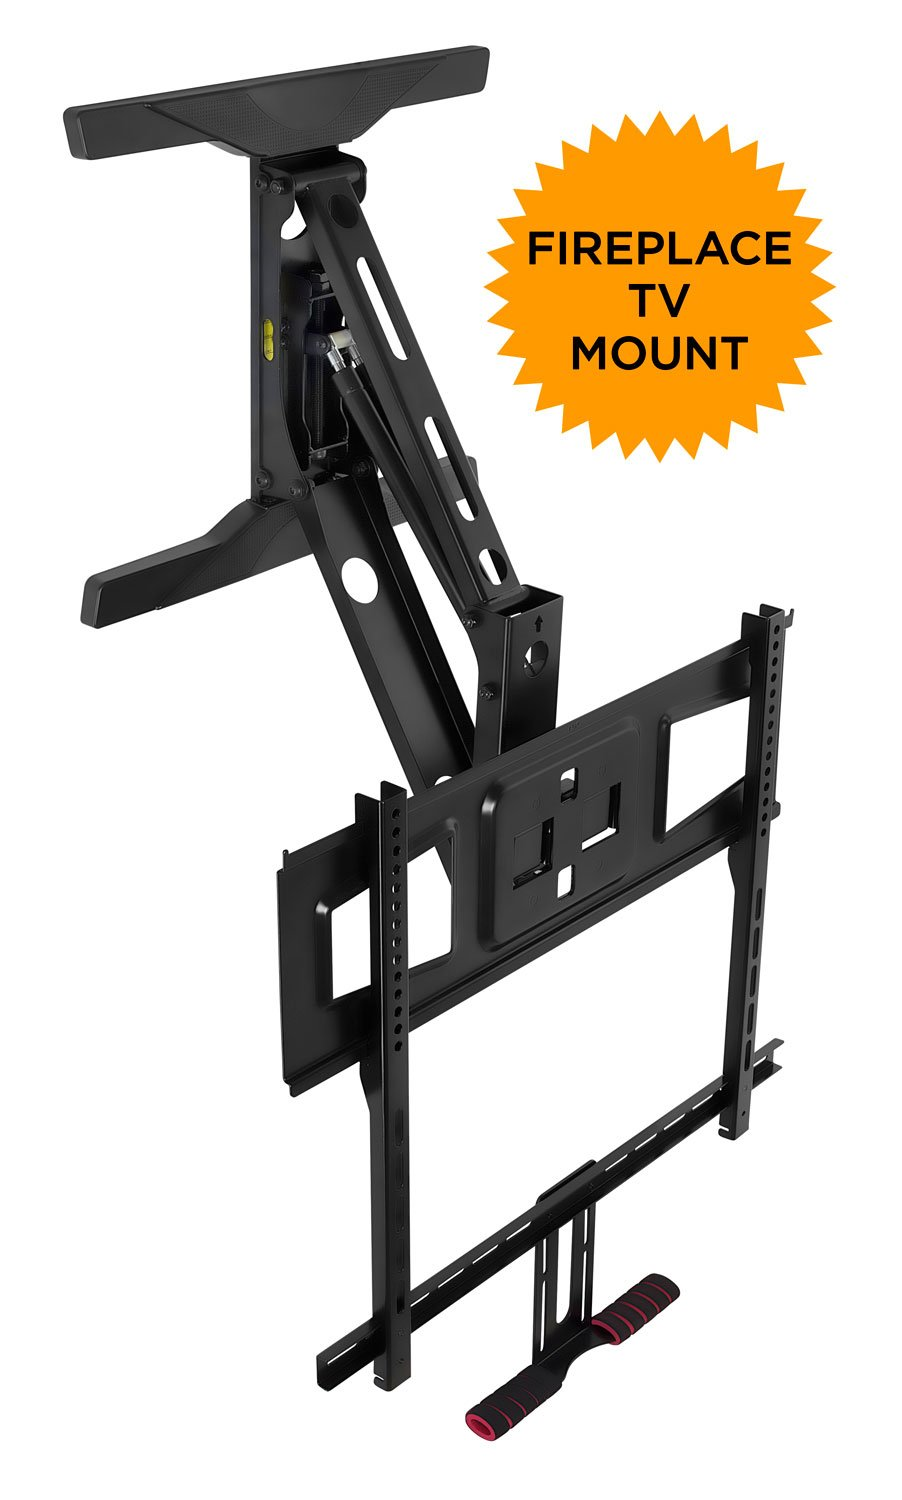 Mount-It! Fireplace TV Mount, Full Motion Pull Down Mantel TV Mounting Bracket With Height Adjustment, Fits 40-70 Inchs TVs, 70 lbs Capacity MI-361